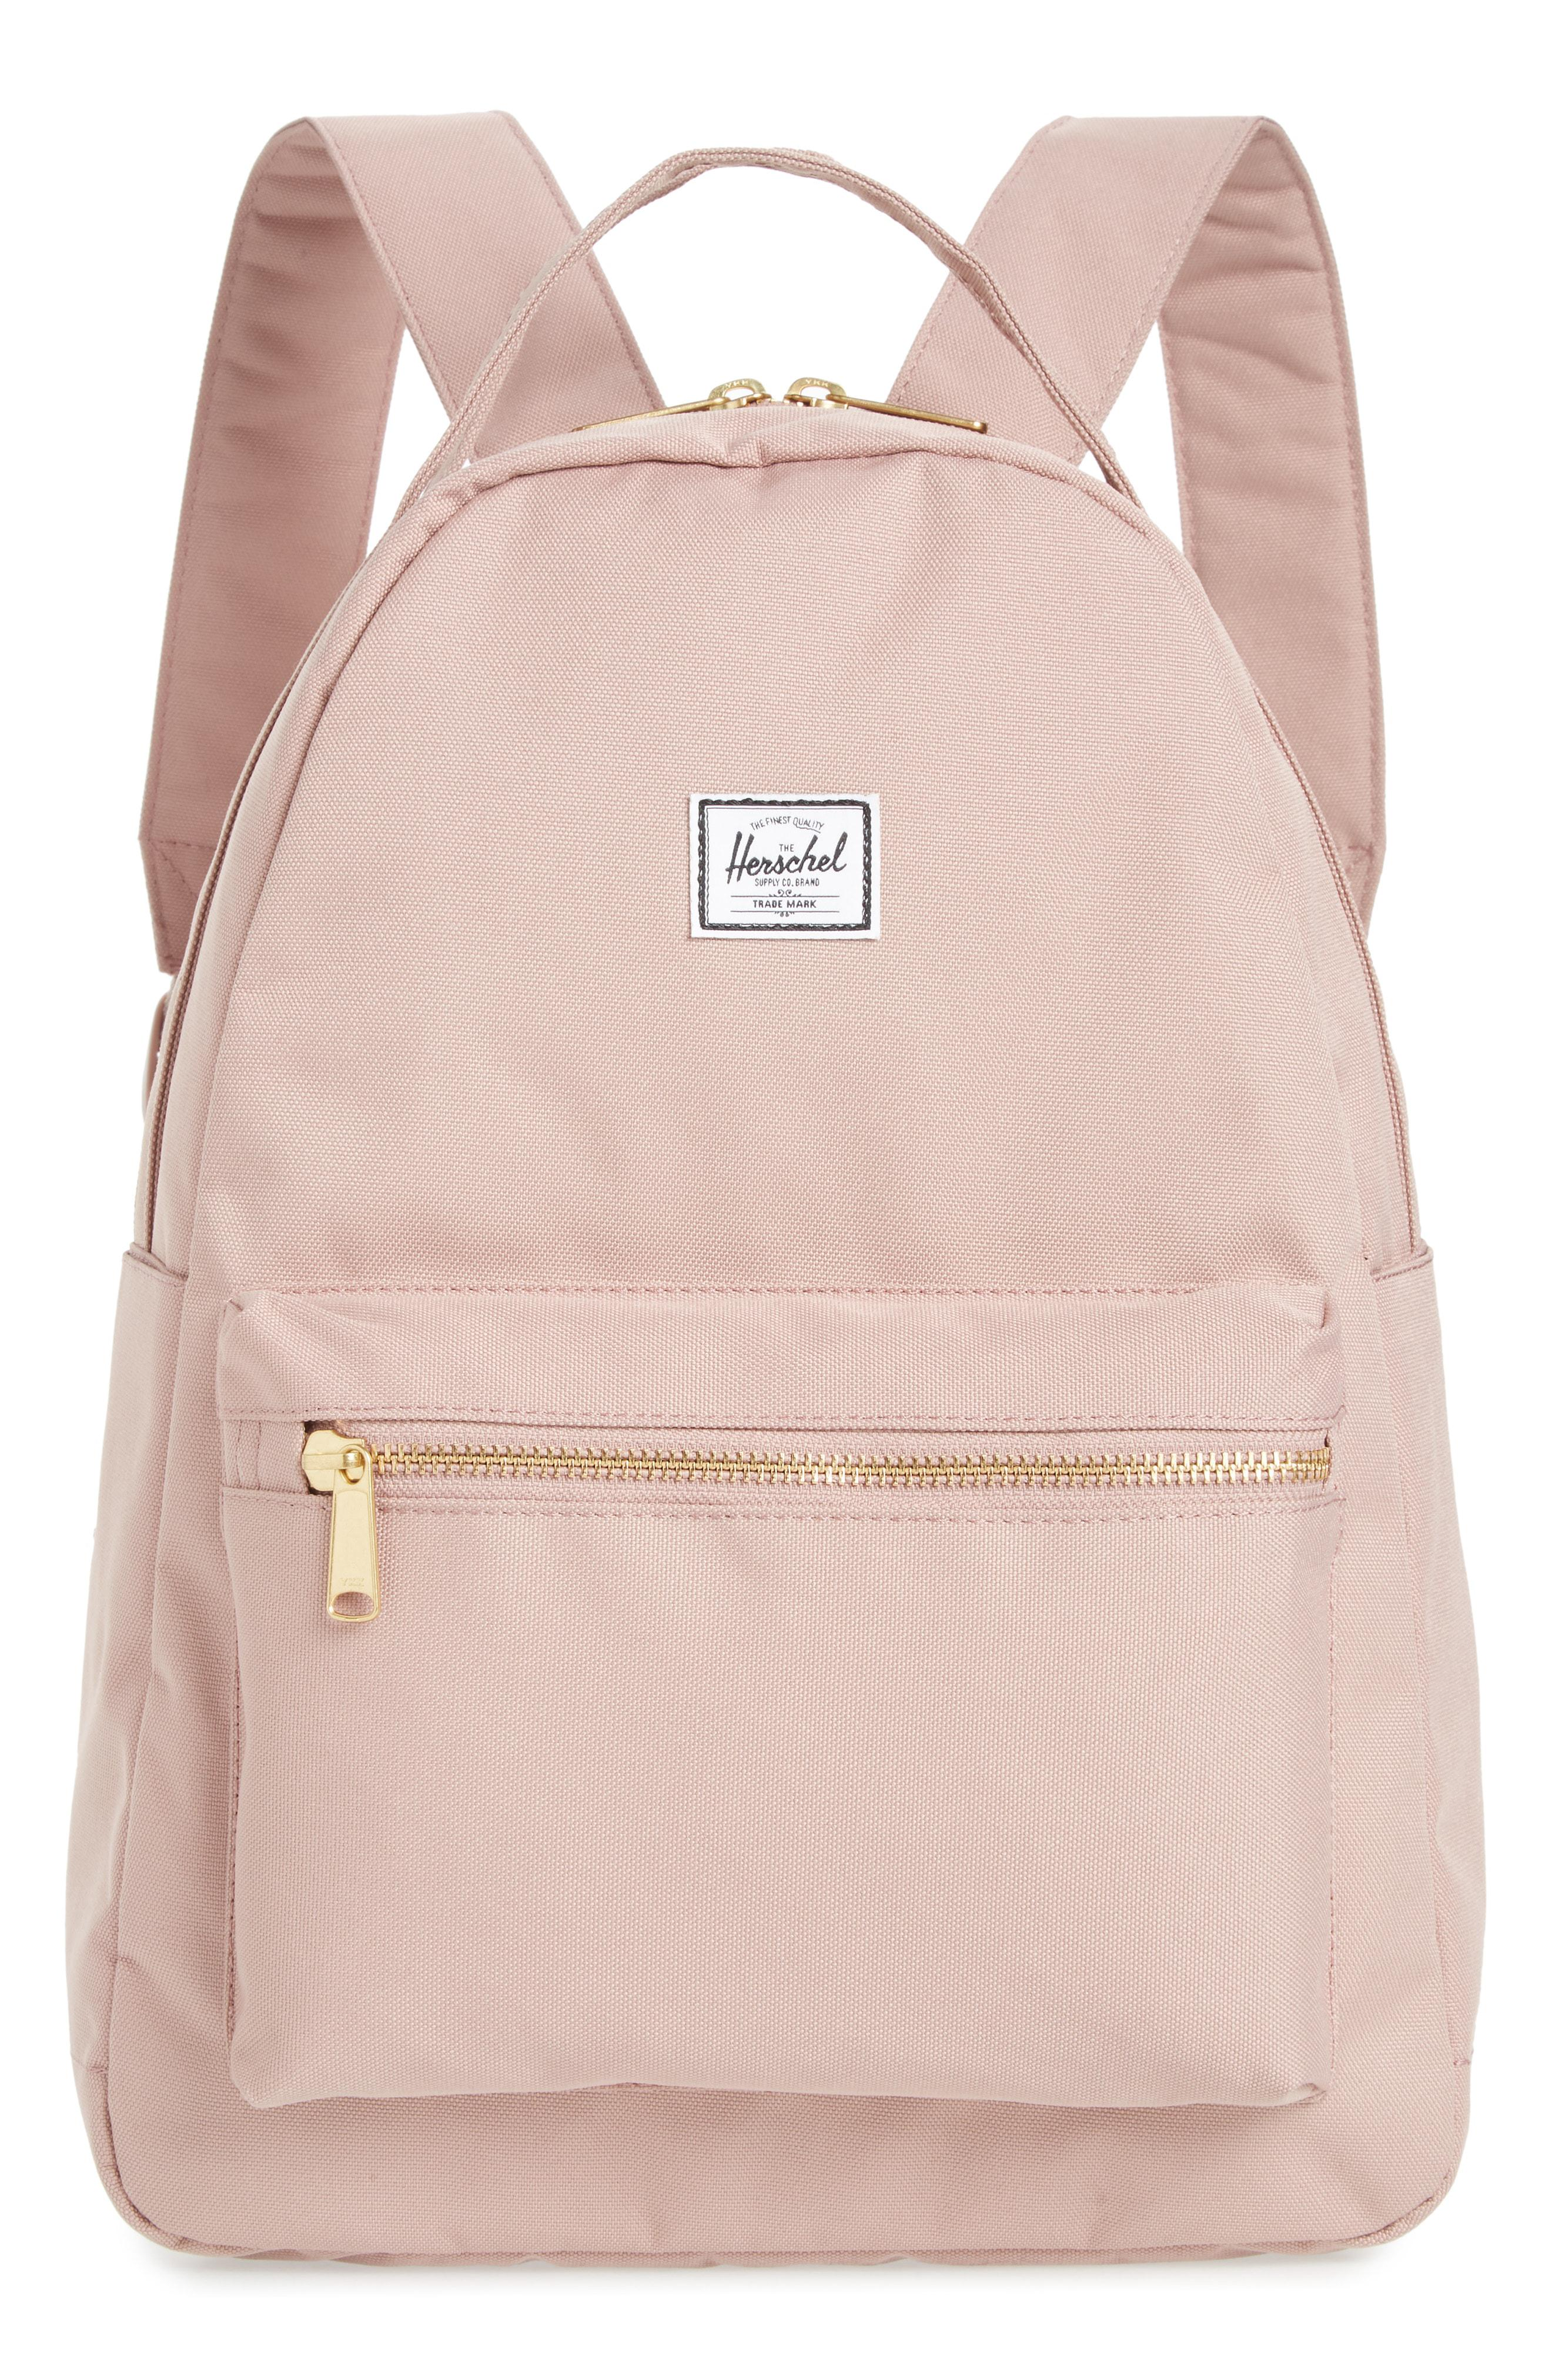 Lyst - Herschel Supply Co. Nova Mid Volume Backpack in Pink 0a29df7a2b4b1